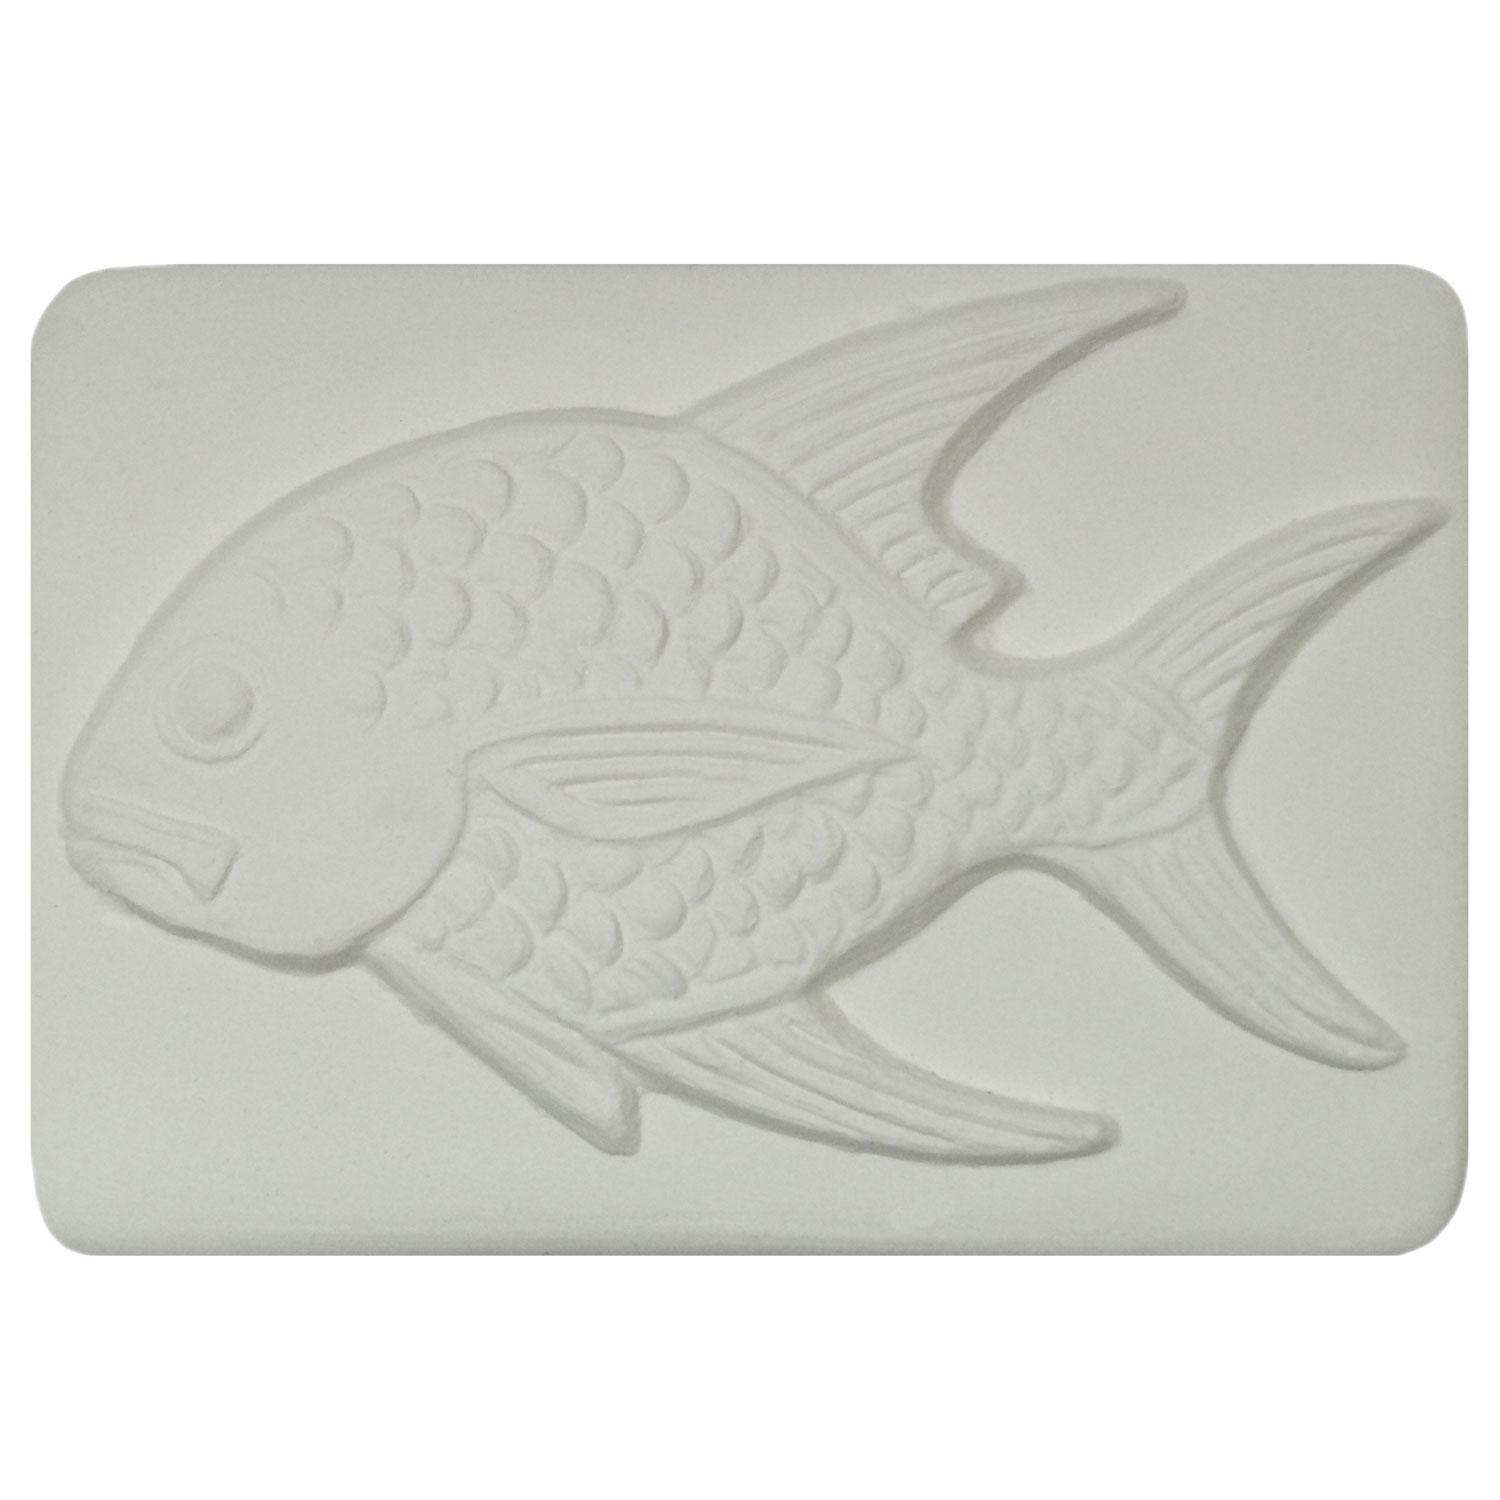 Delphi Studio Goldfish Impression Tile